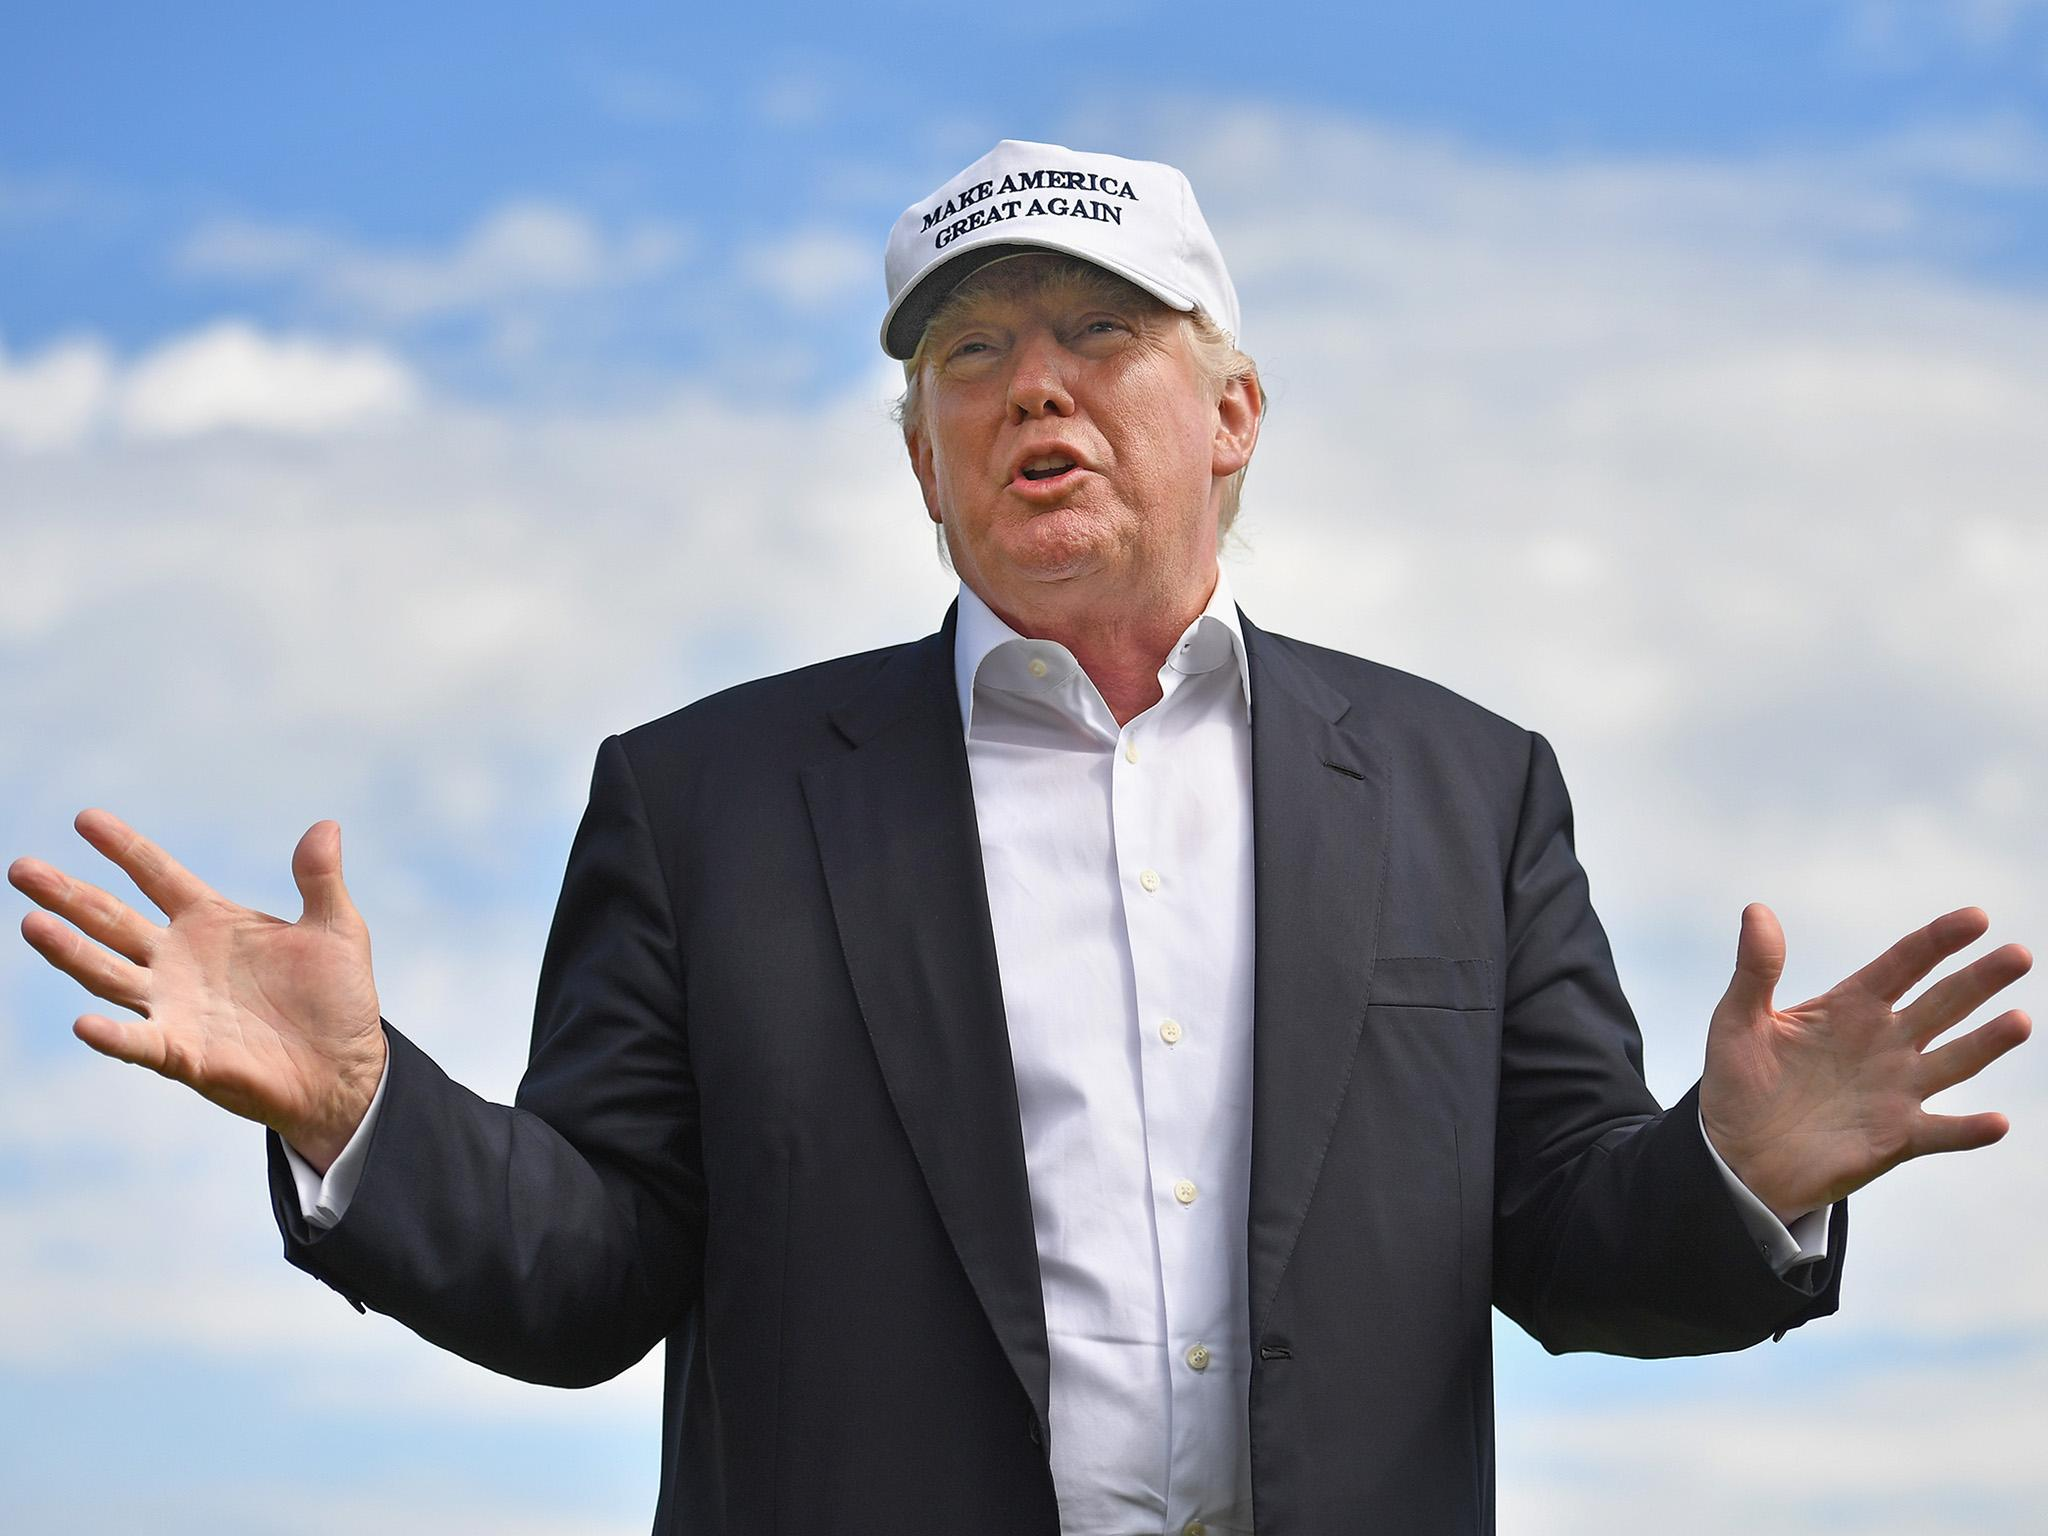 Trump is on yet another summer golfing holiday. Here's how much that's costing taxpayers